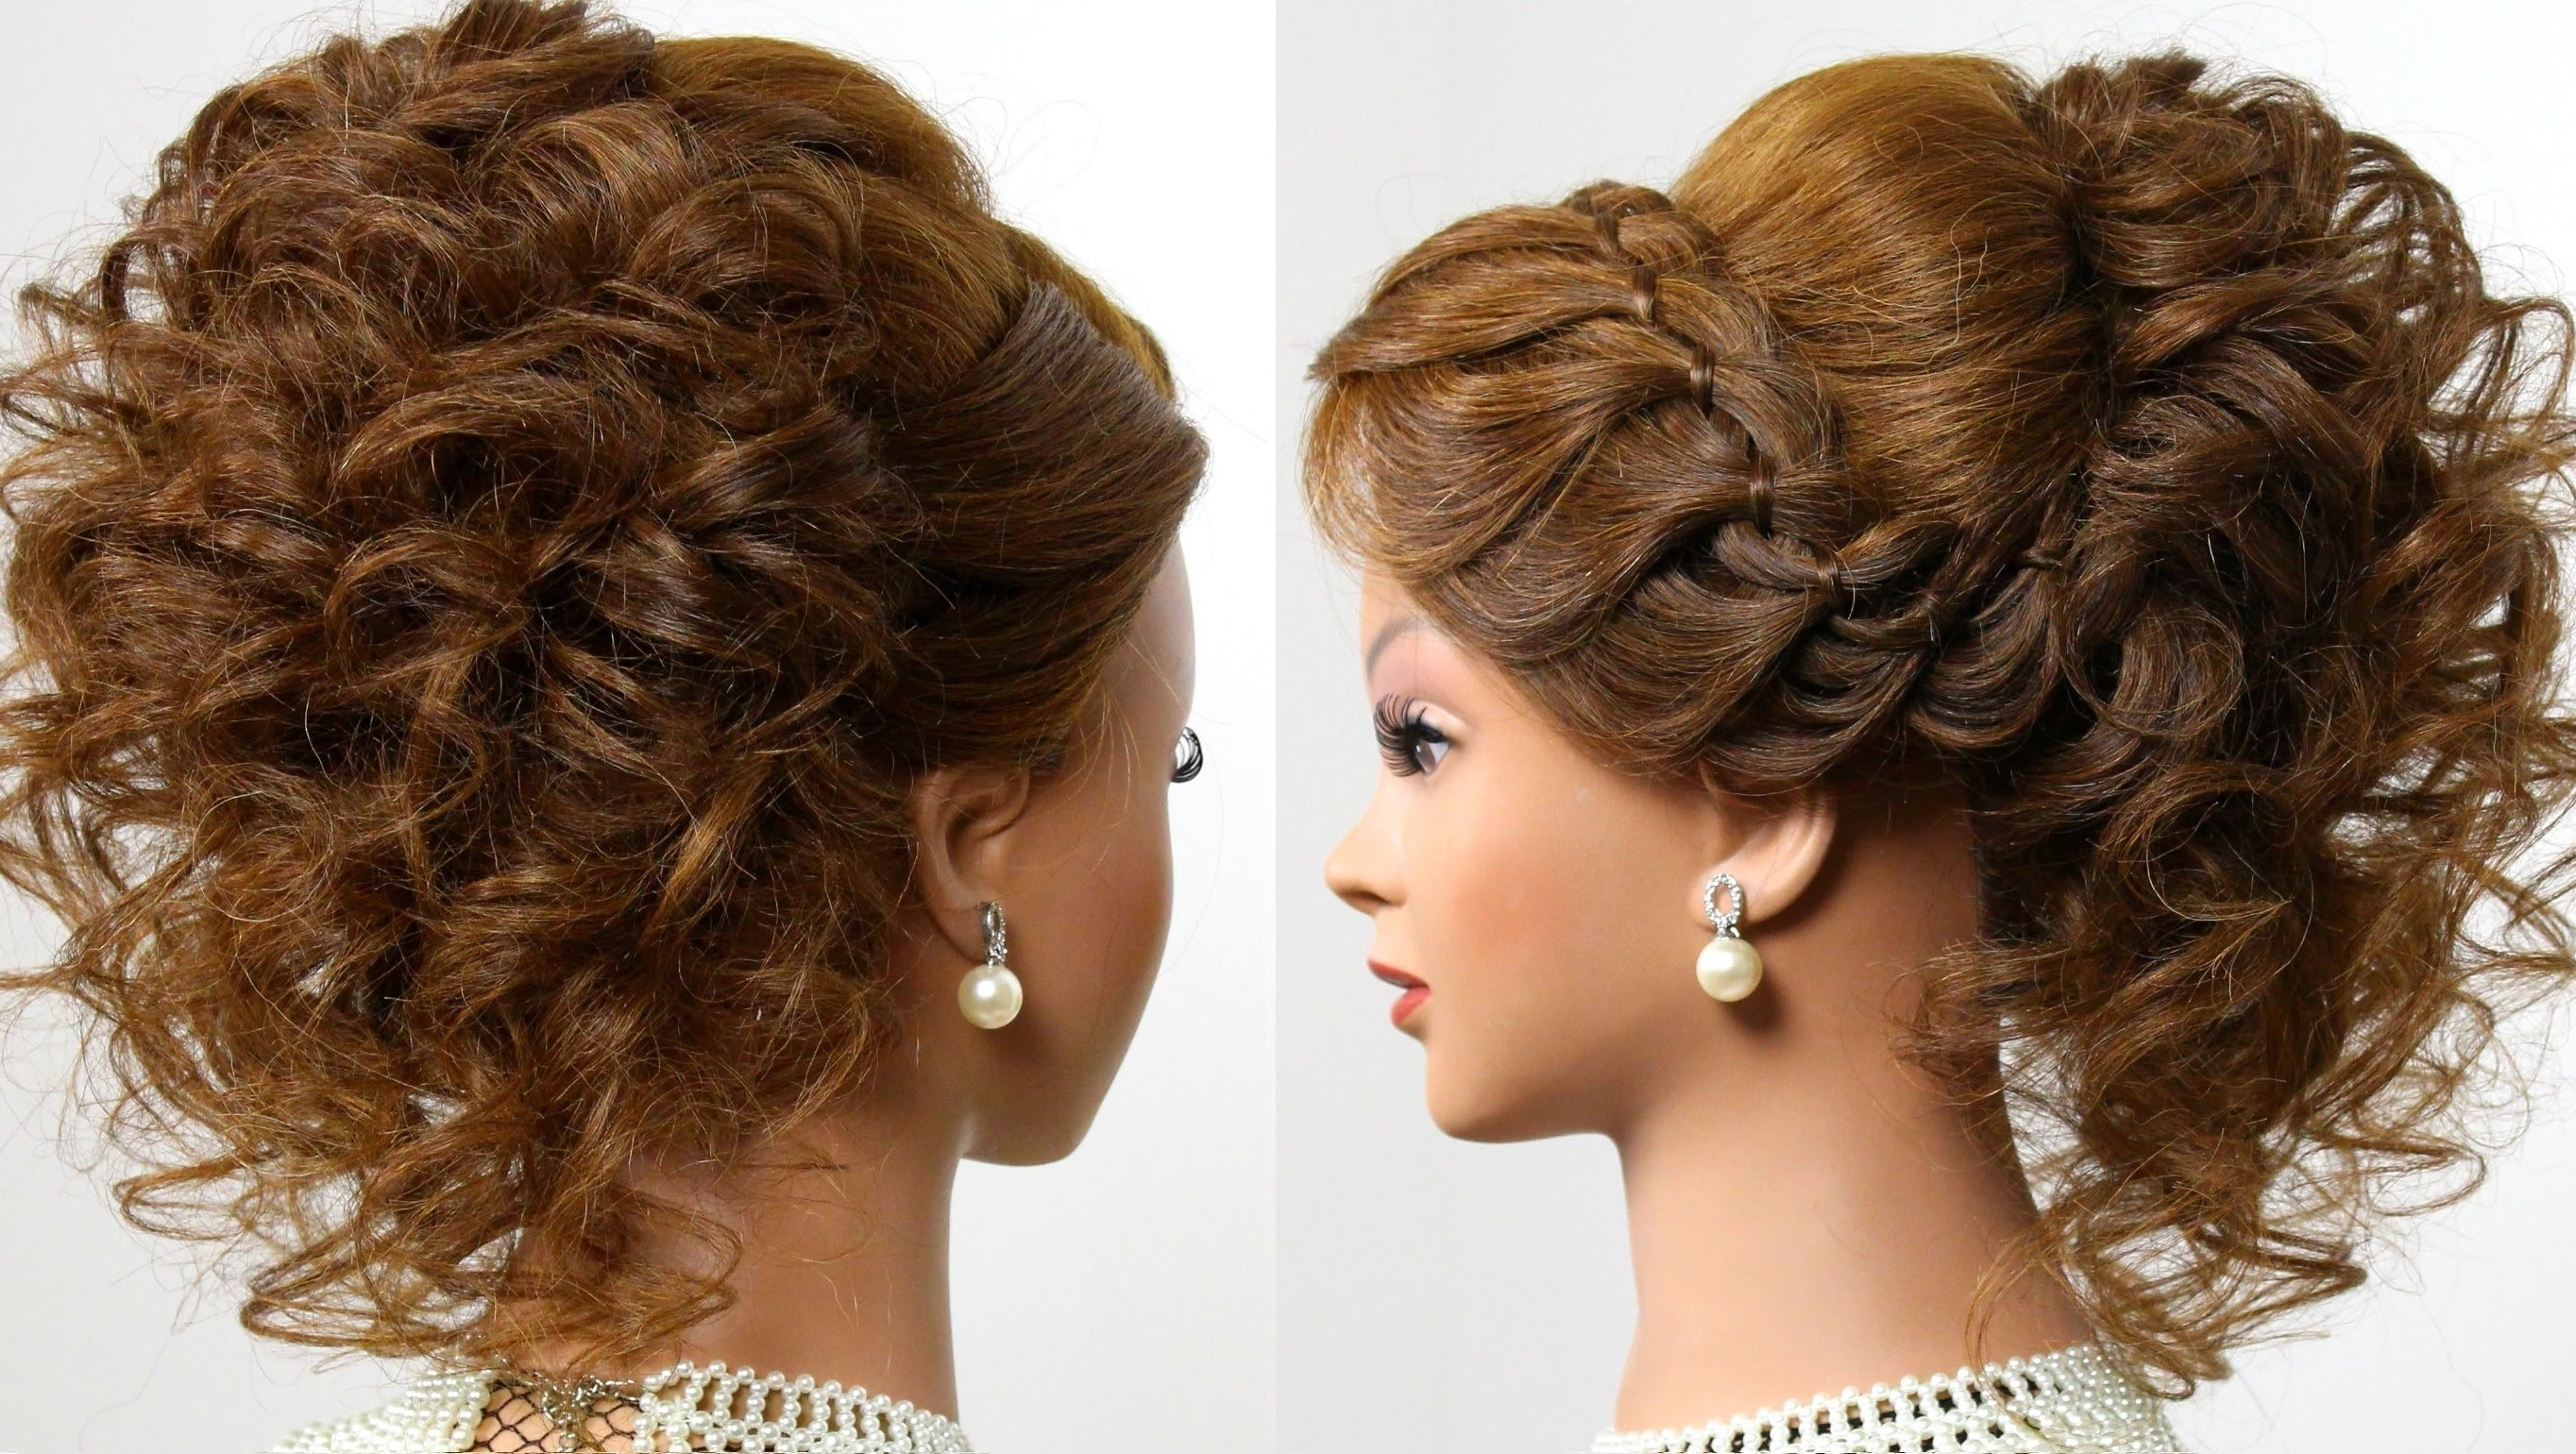 Favorite Wedding Hairstyles For Long Romantic Hair Intended For Romantic Bridal Prom Hairstyle For Long Hair Tutorial Sensational (View 6 of 15)